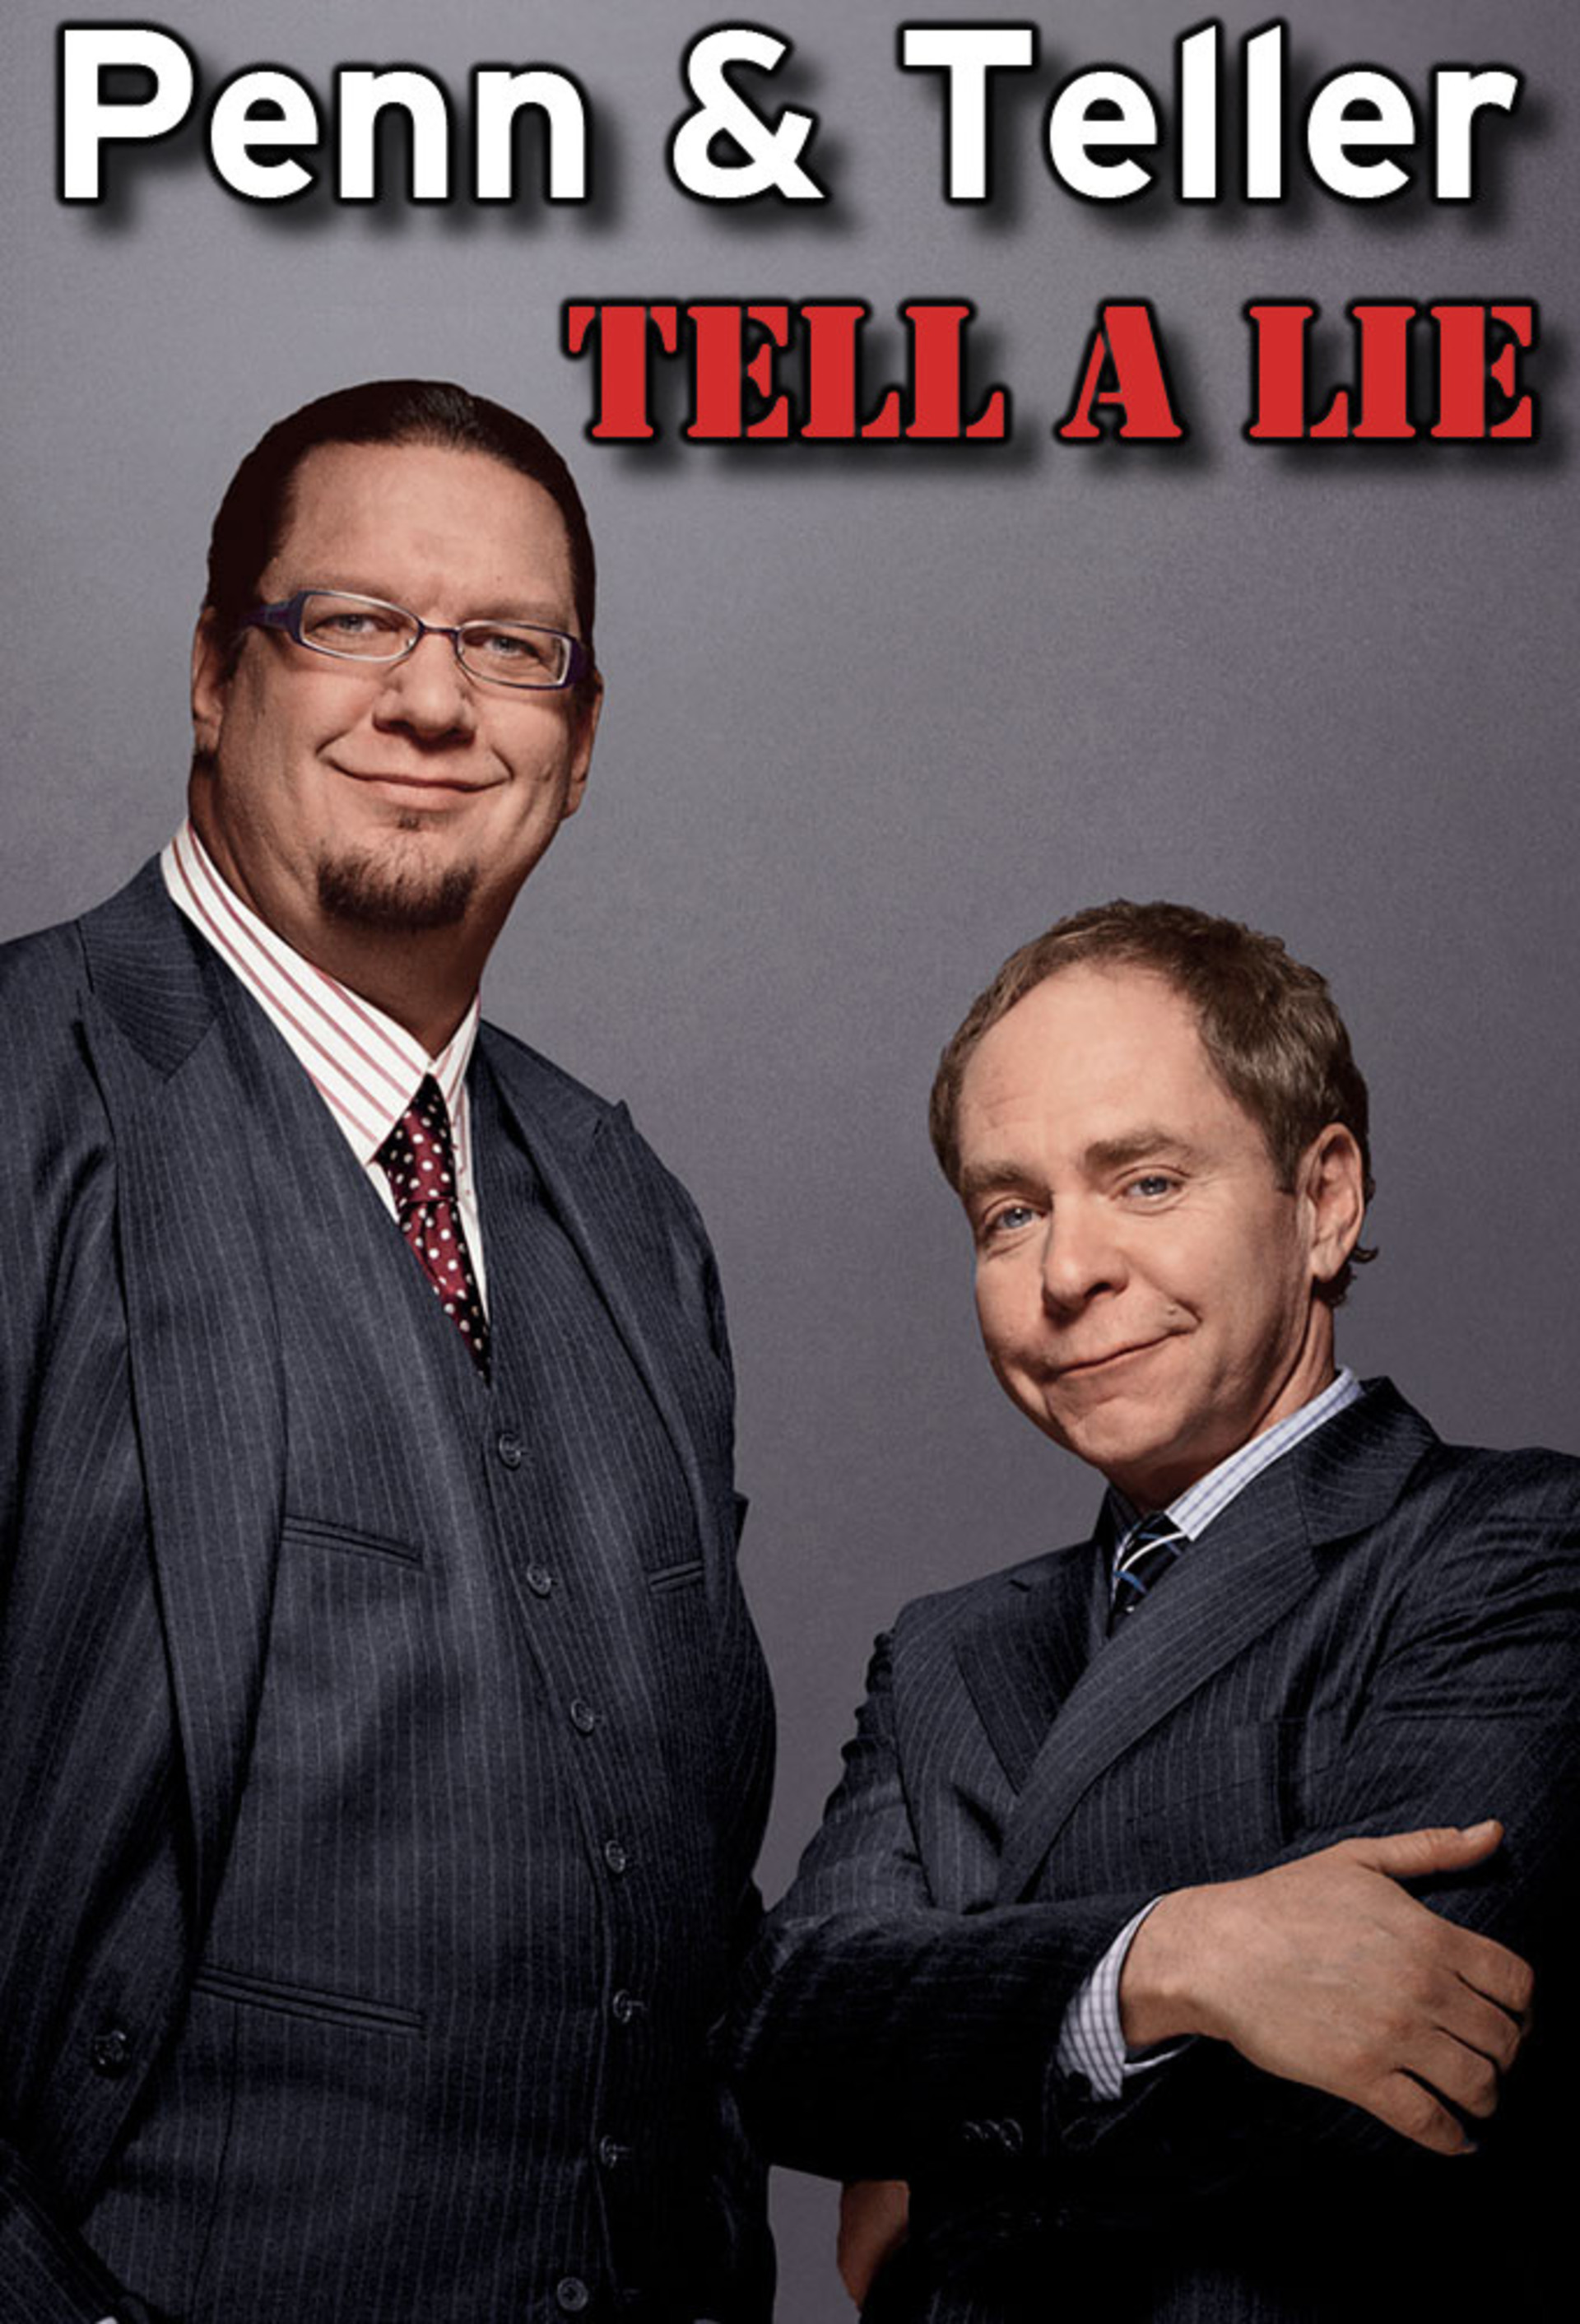 Penn & Teller Tell A Lie: Season 1